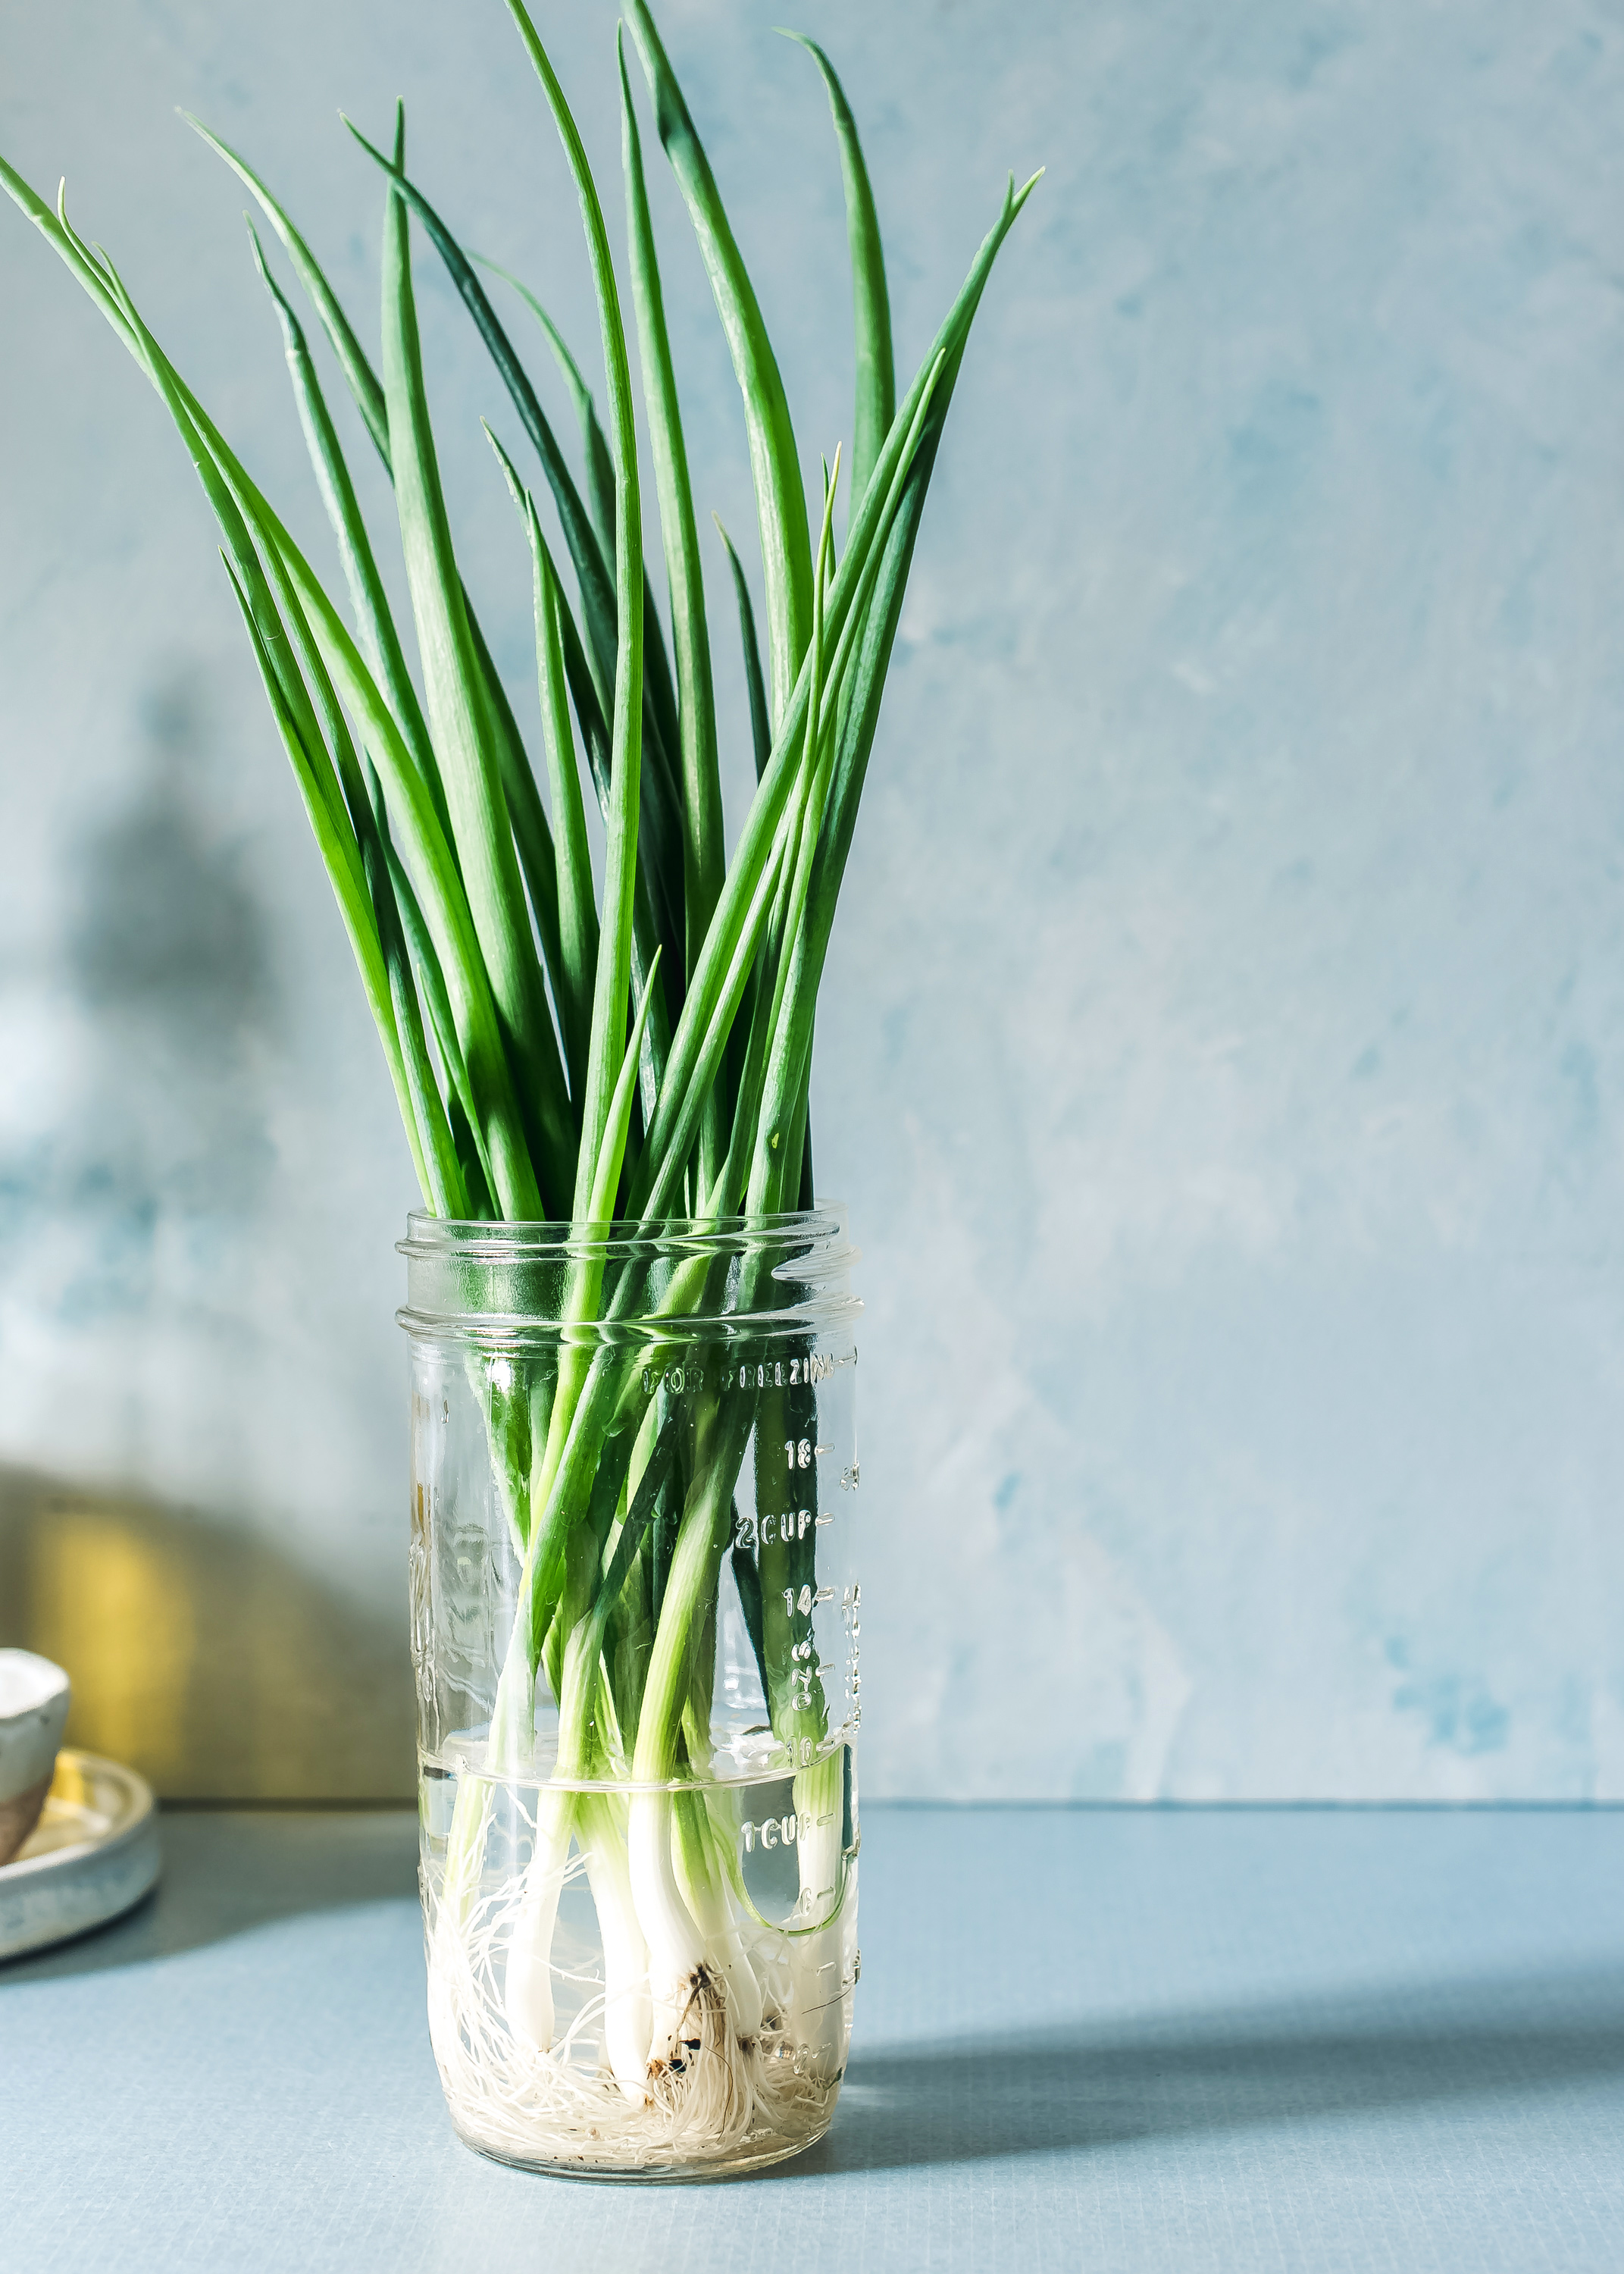 Herbs: How to Find, Buy and Store Without Plastic – Kale & Compass